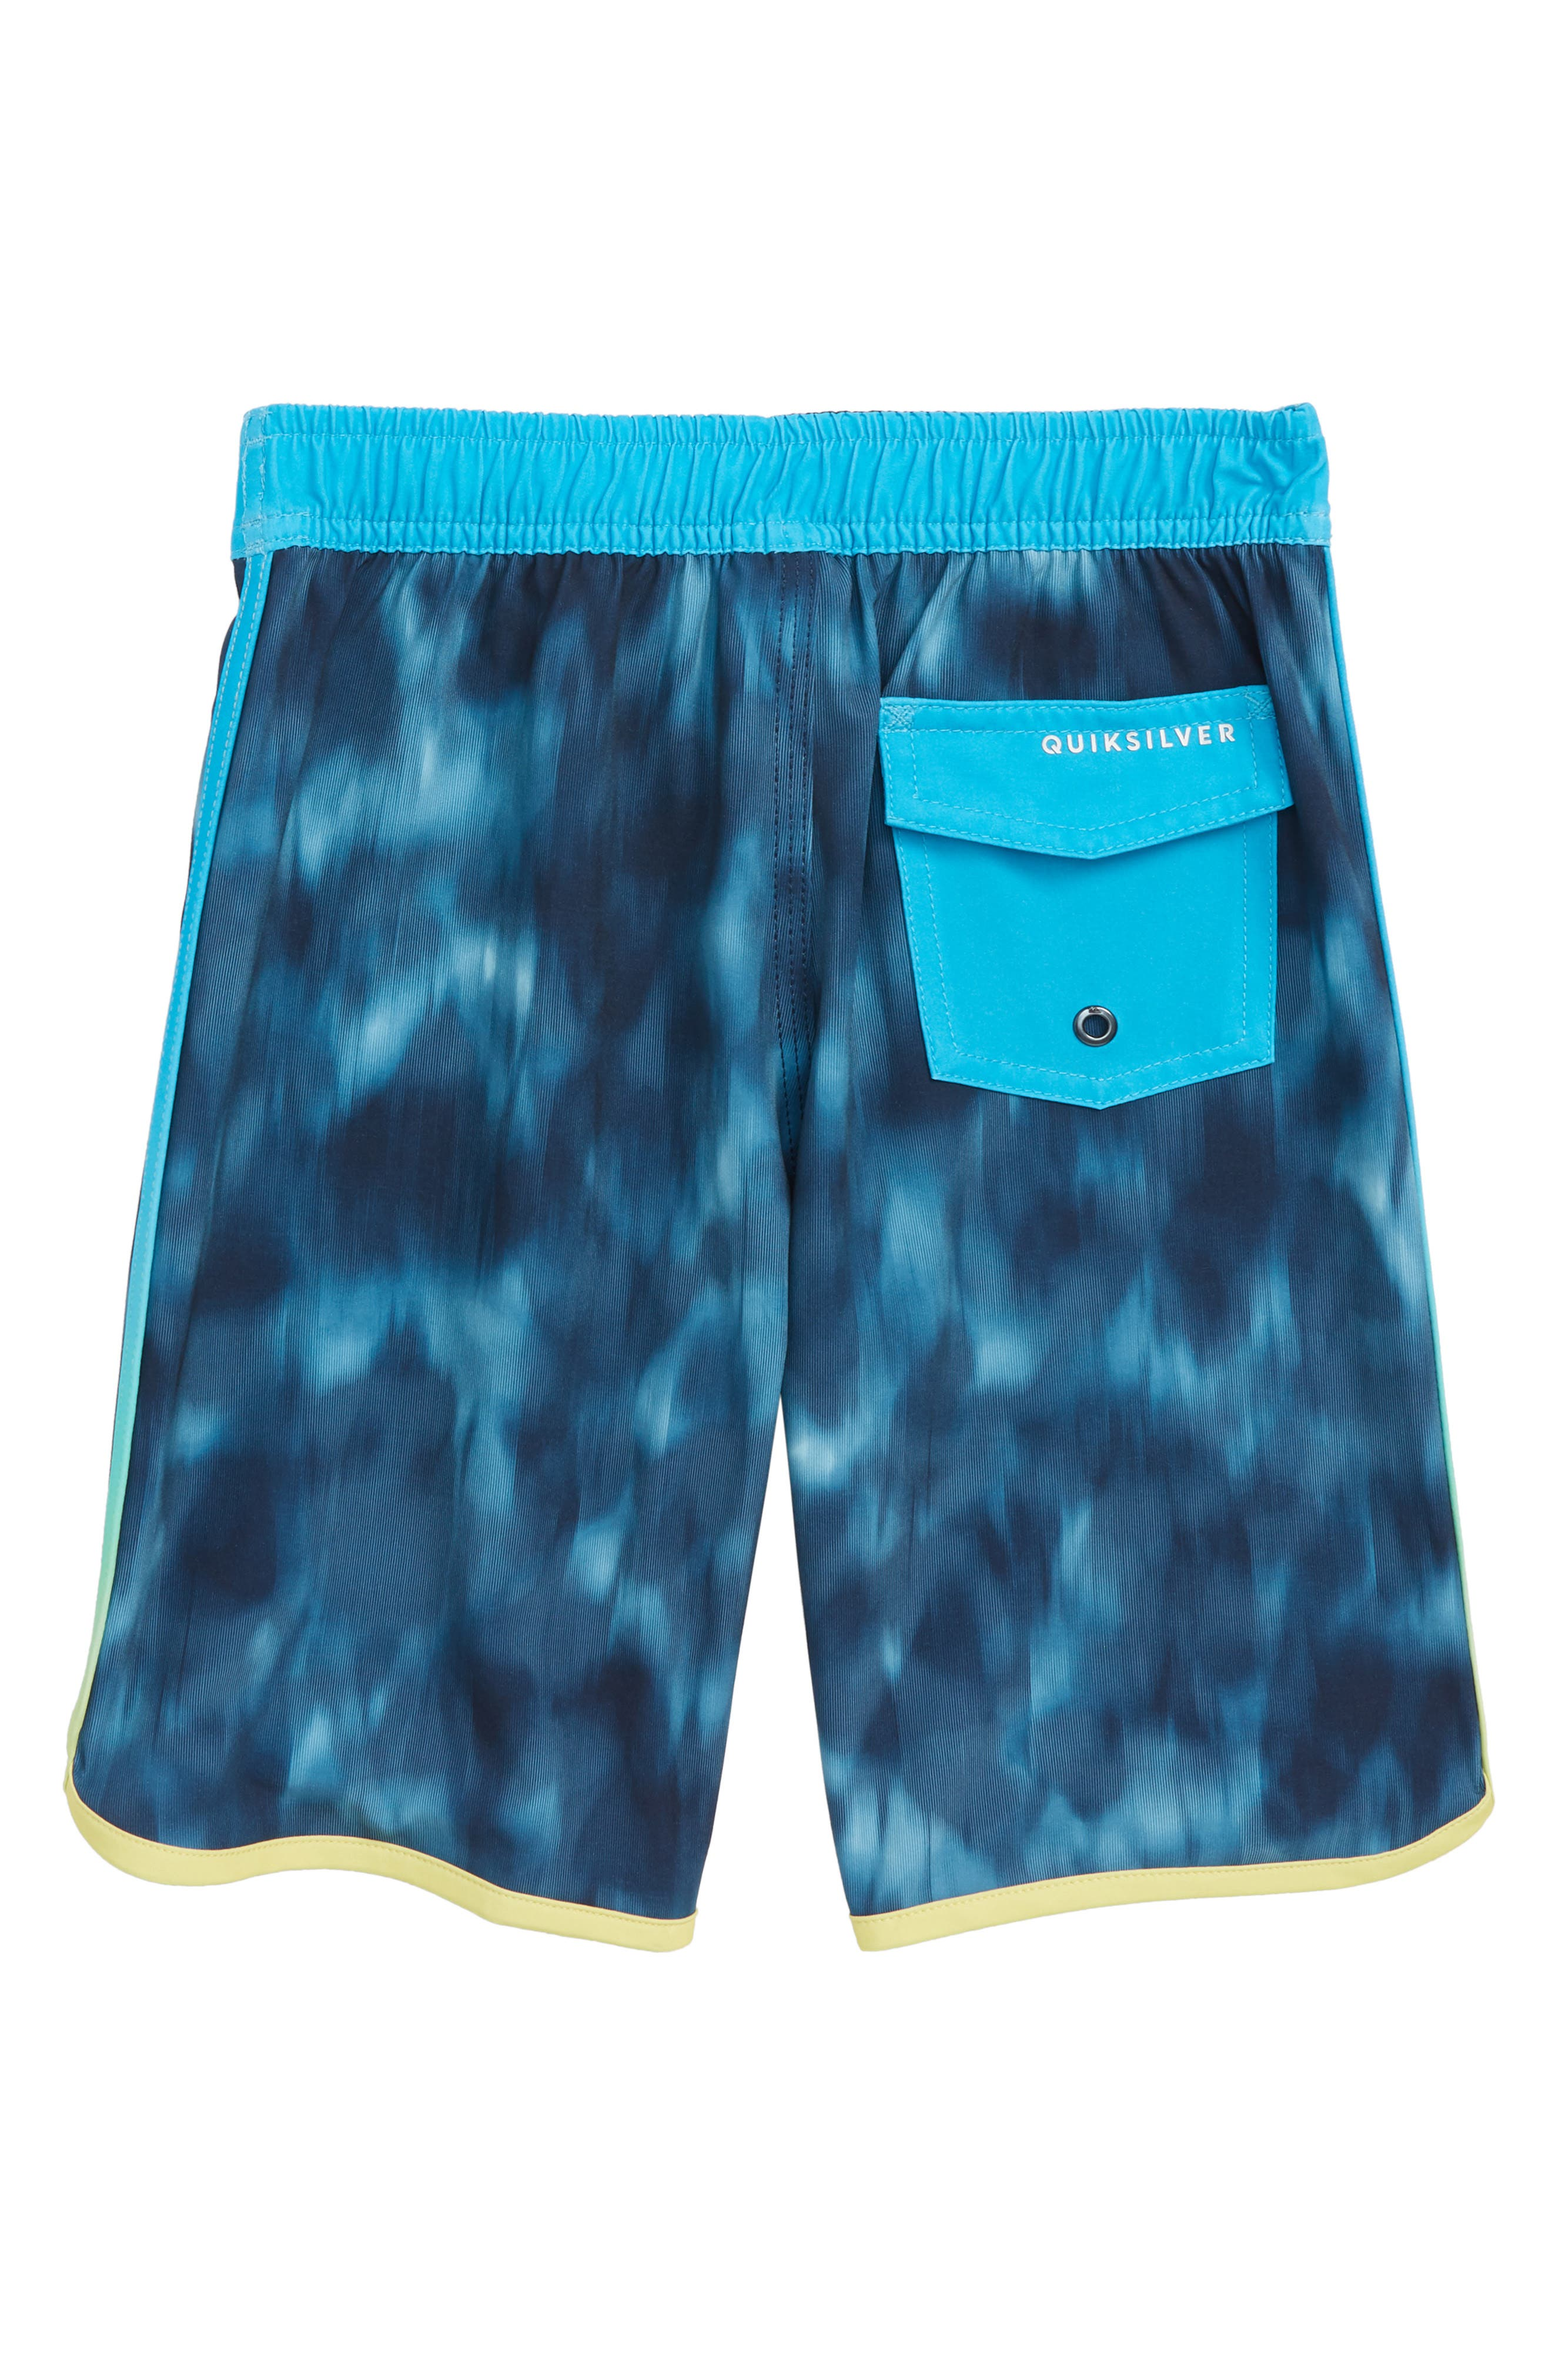 Highline Recon Board Shorts,                             Alternate thumbnail 2, color,                             REAL TEAL